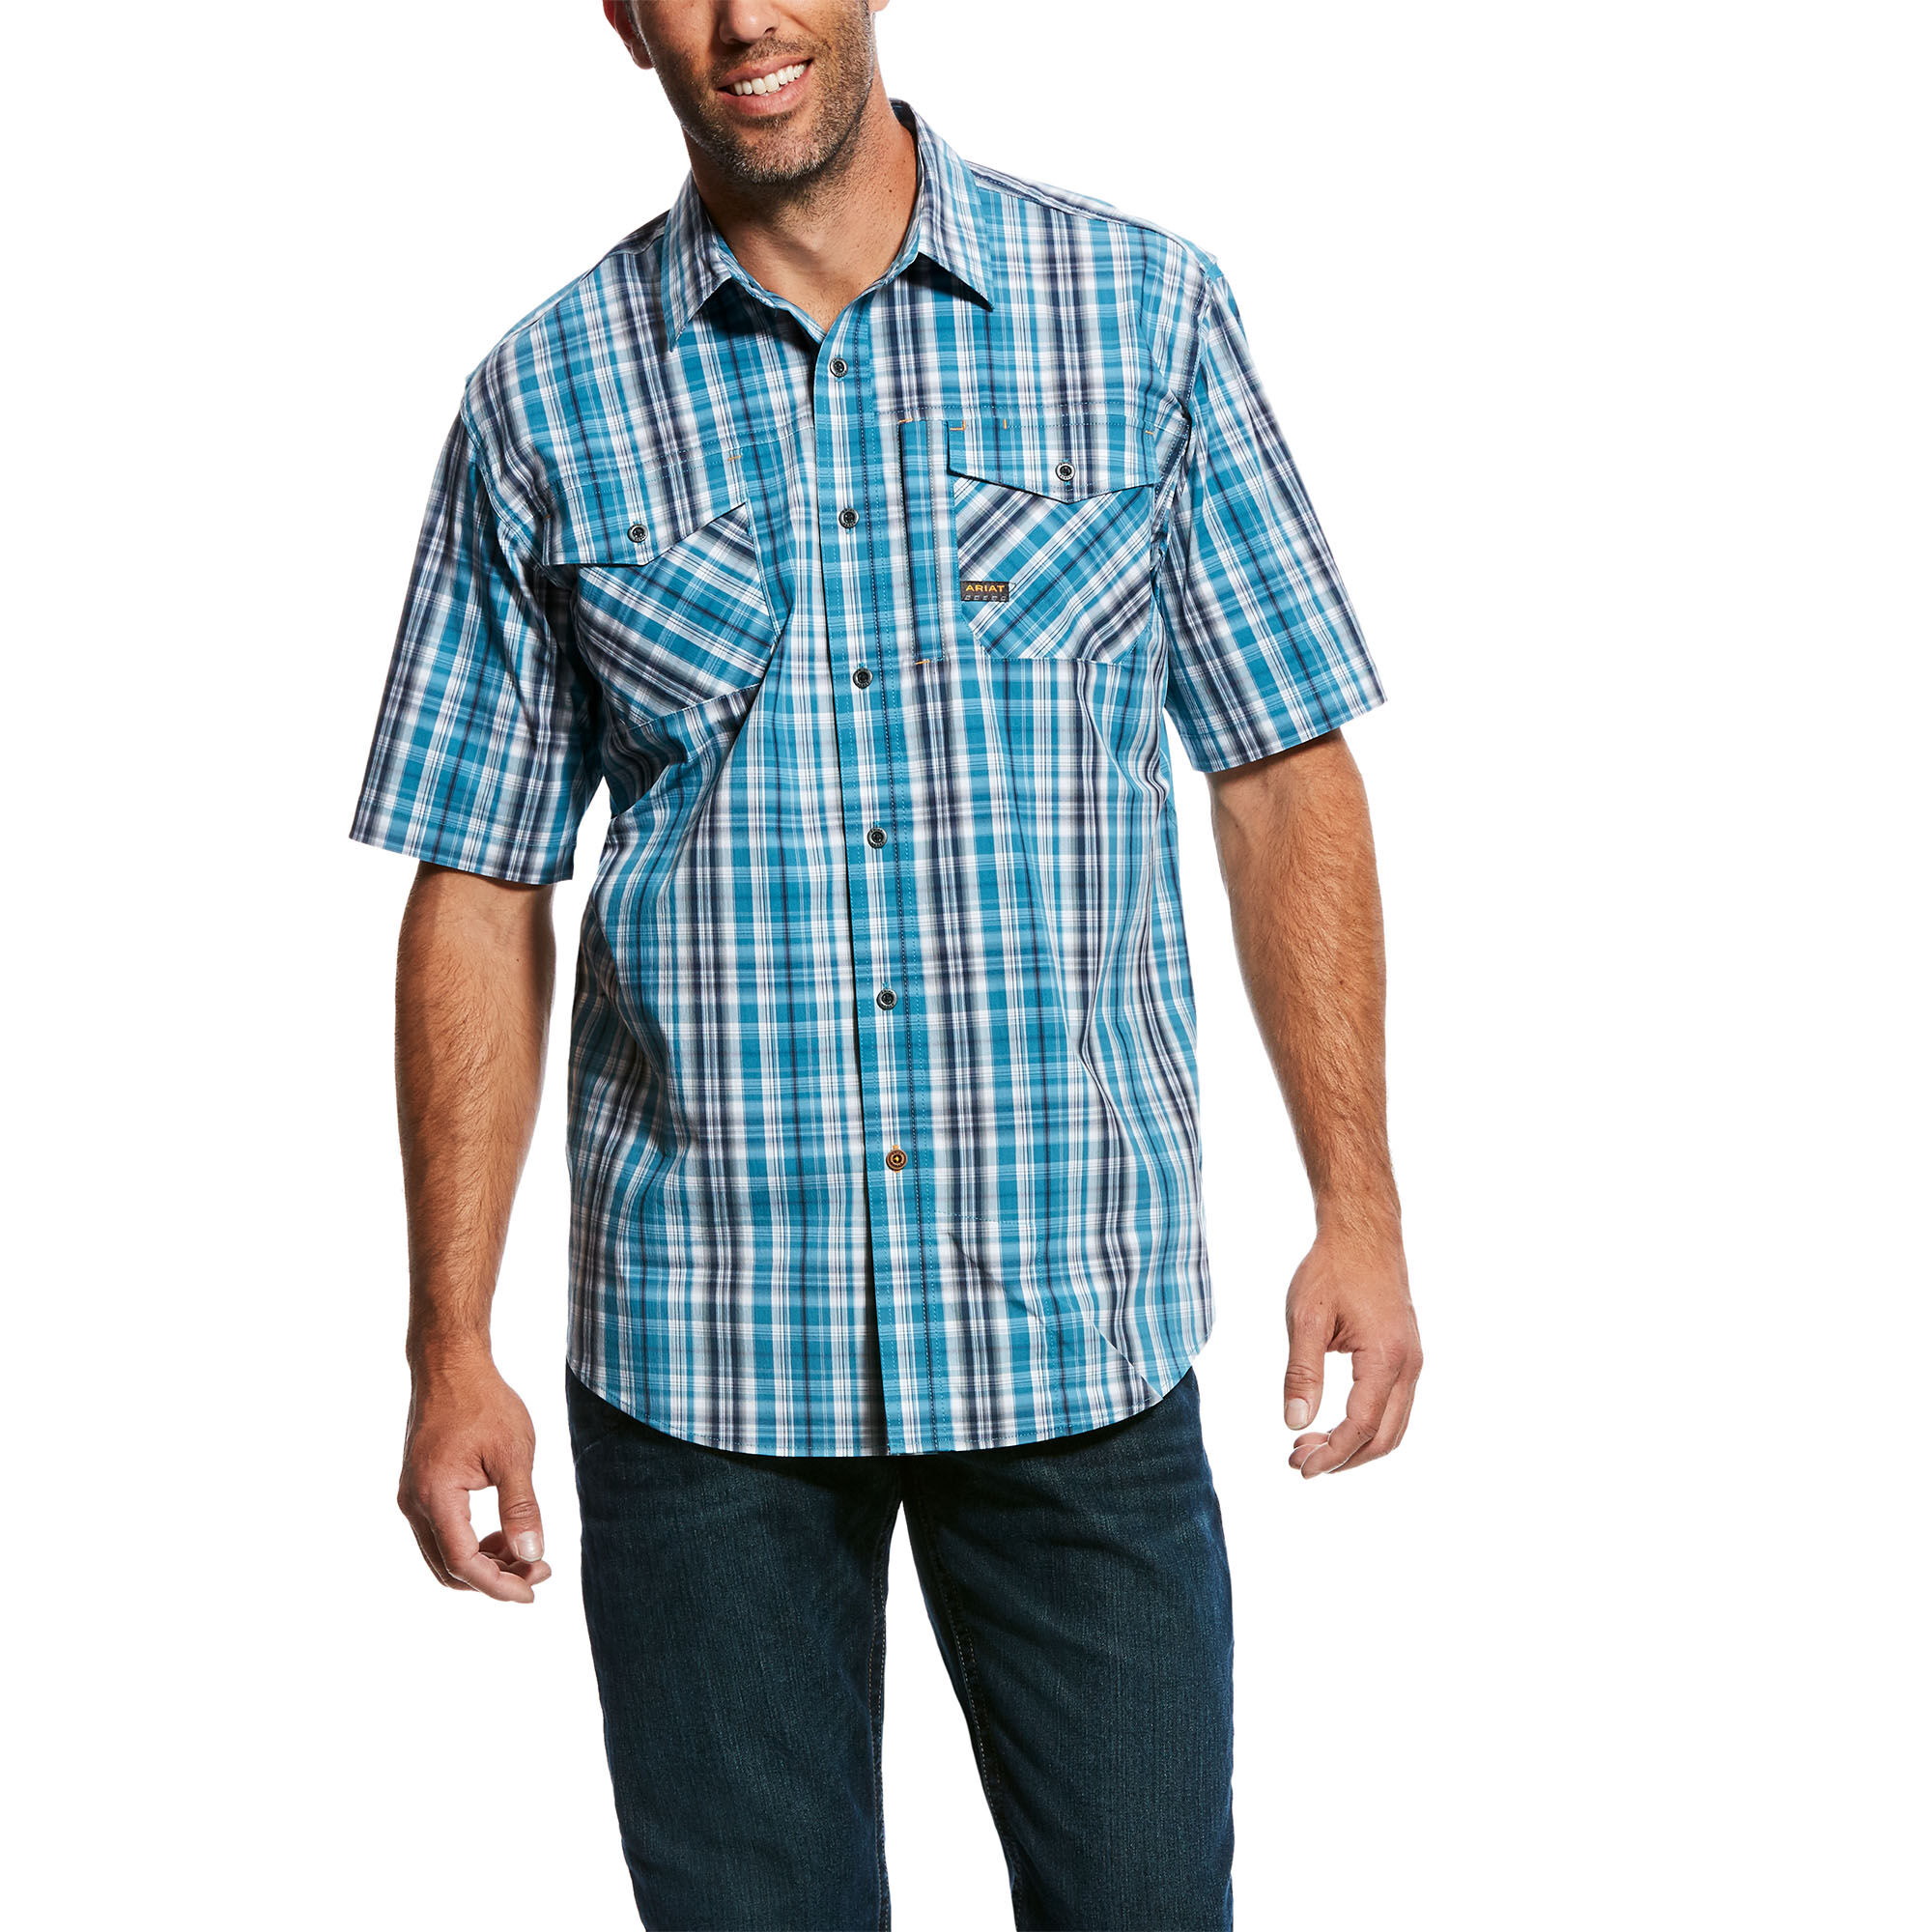 Rebar Workman Work Shirt